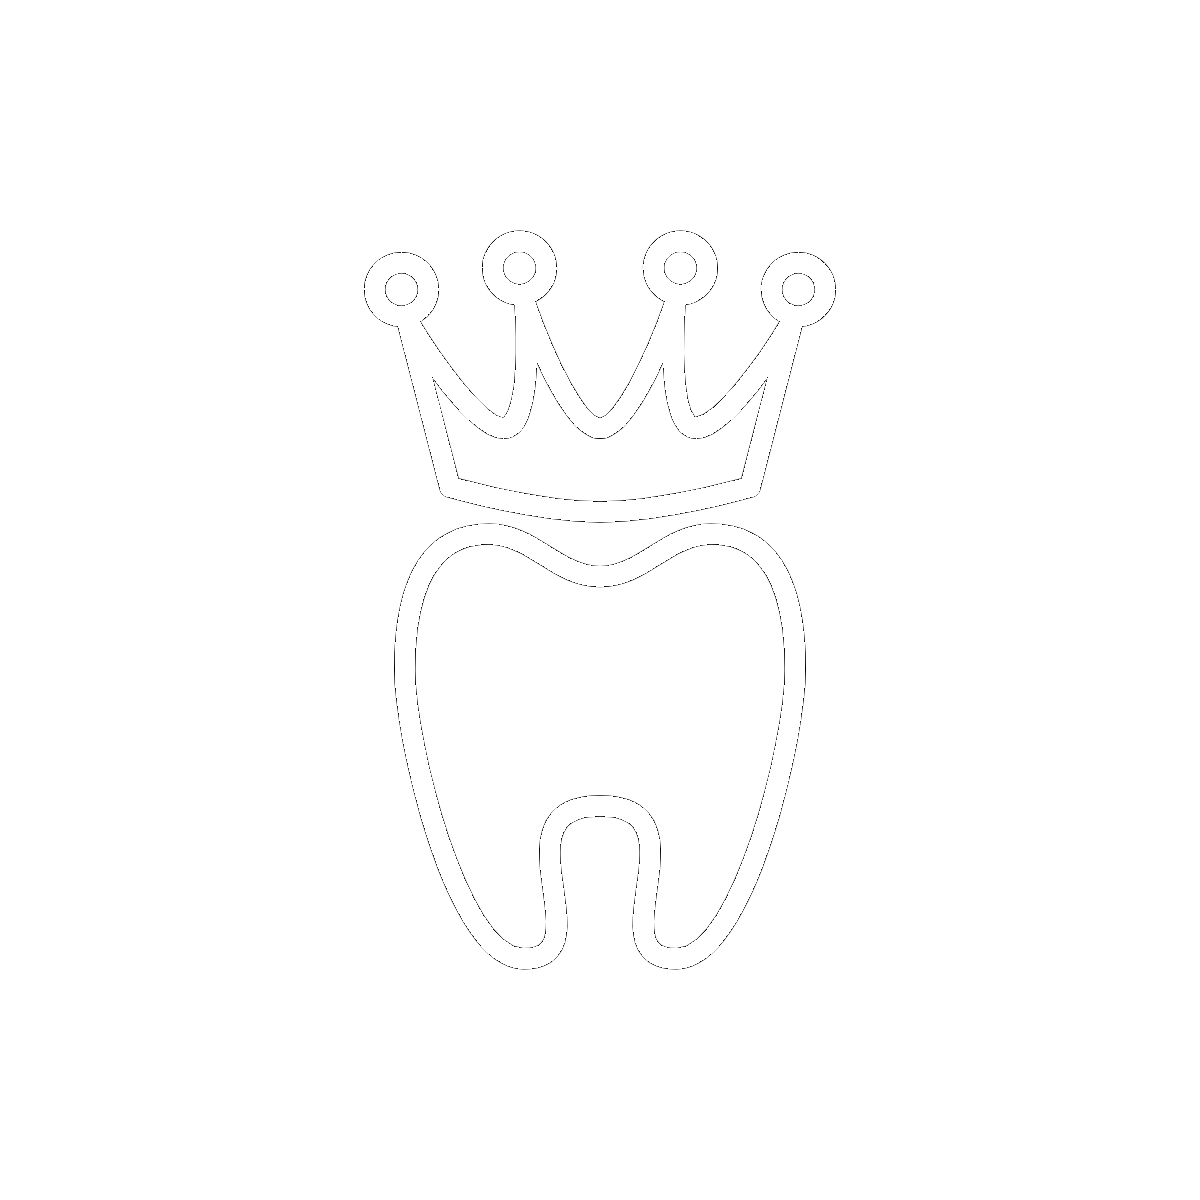 Symbol The Corn/Gold Teeth